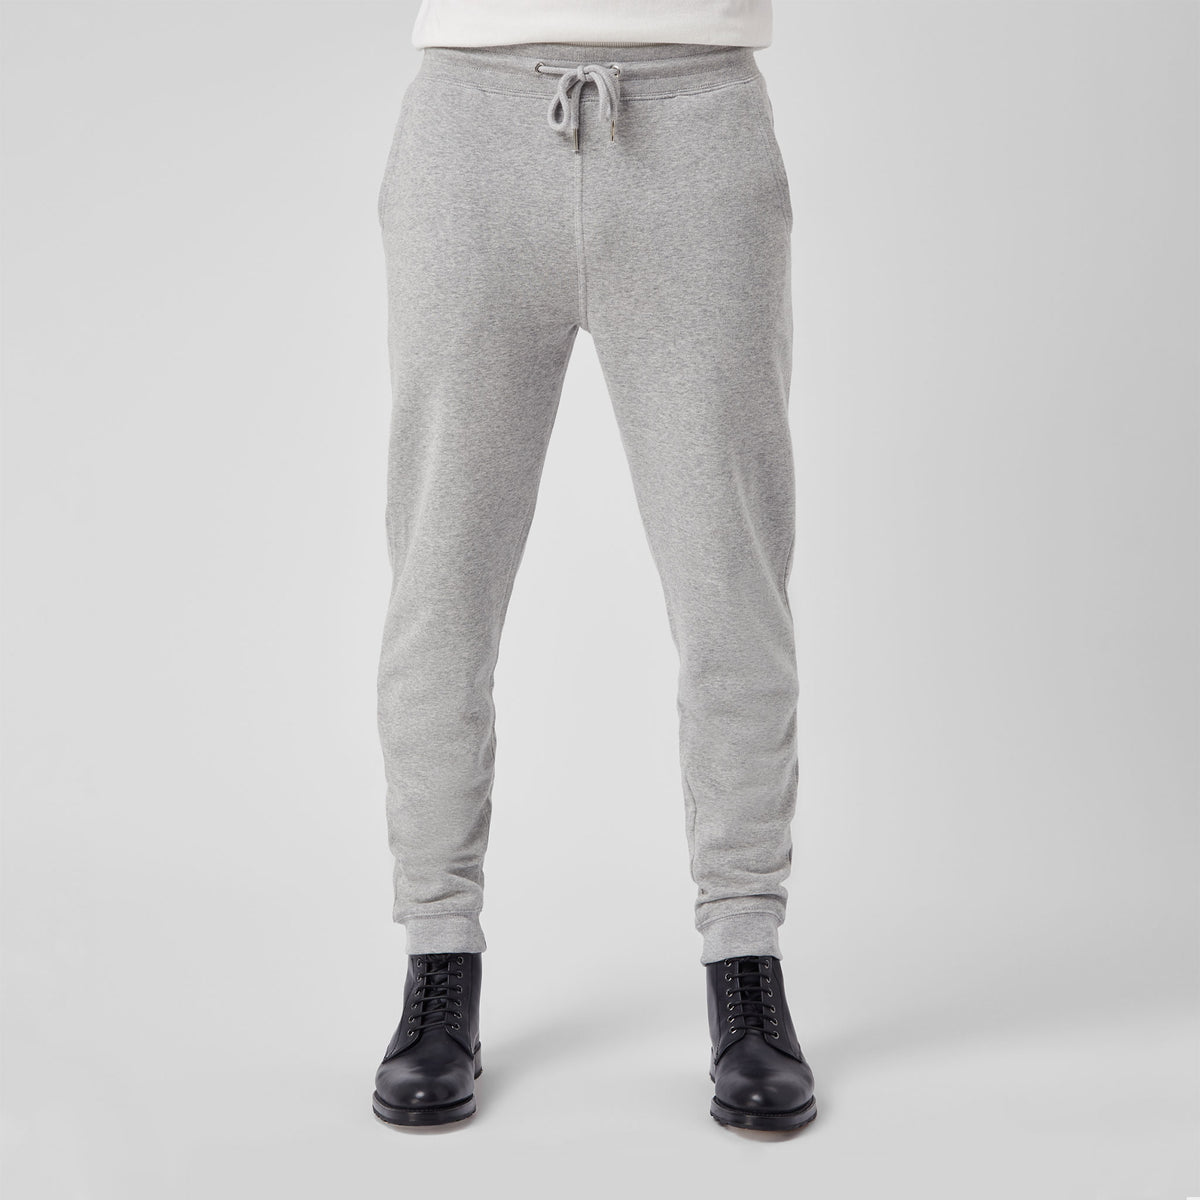 mens-grey-sweatpants